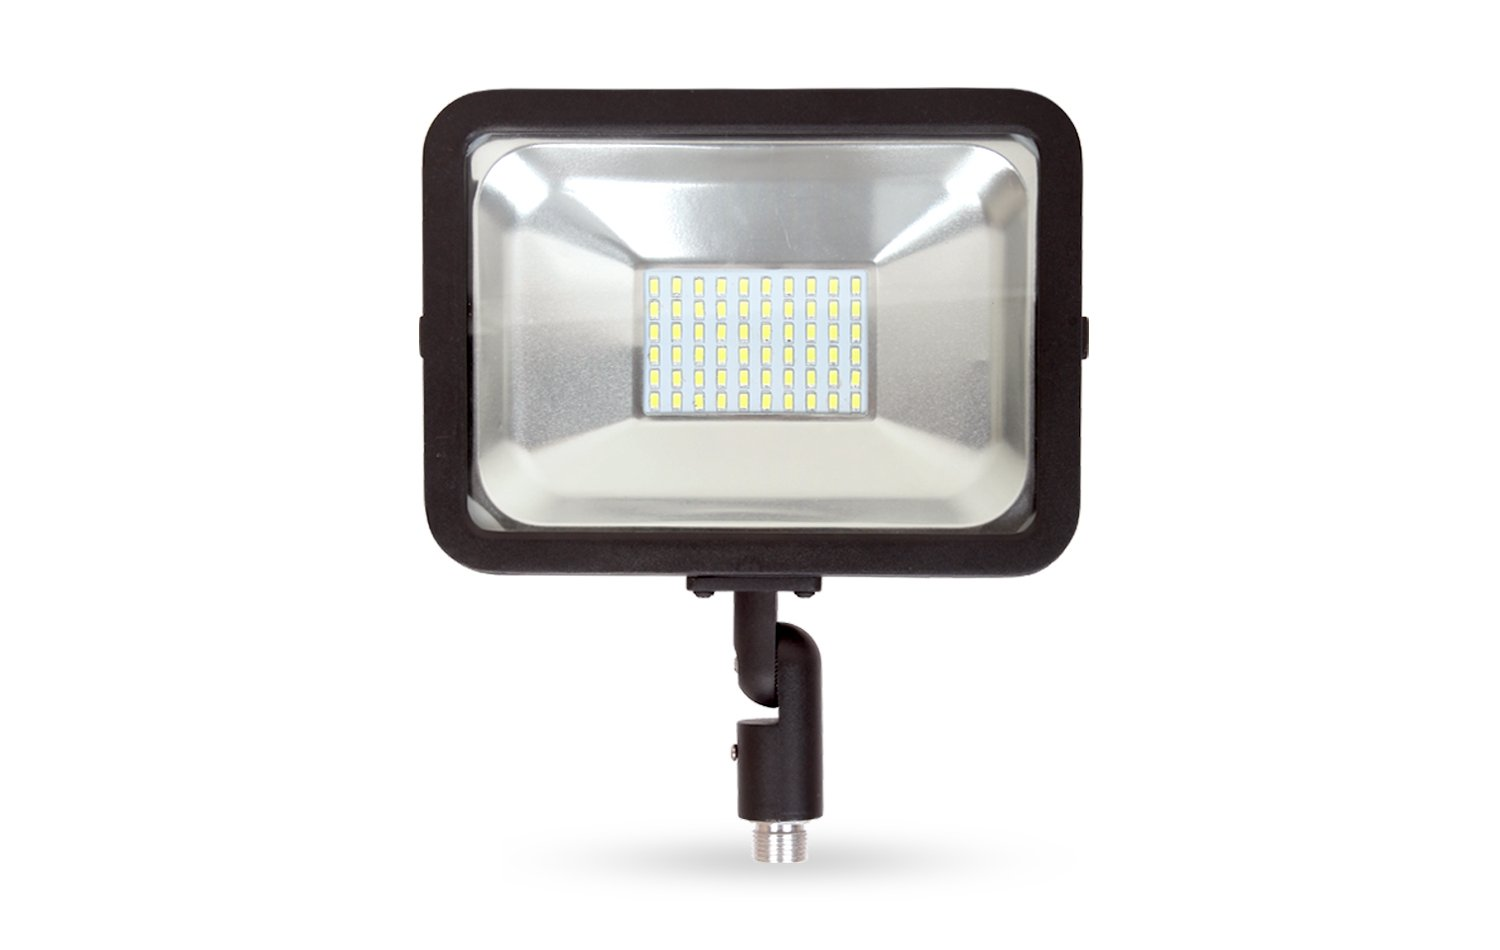 LLT LED COMPACT Floodlight with Arm SMD Outdoor Landscape Security Waterproof 30W 5000K (Daylight)